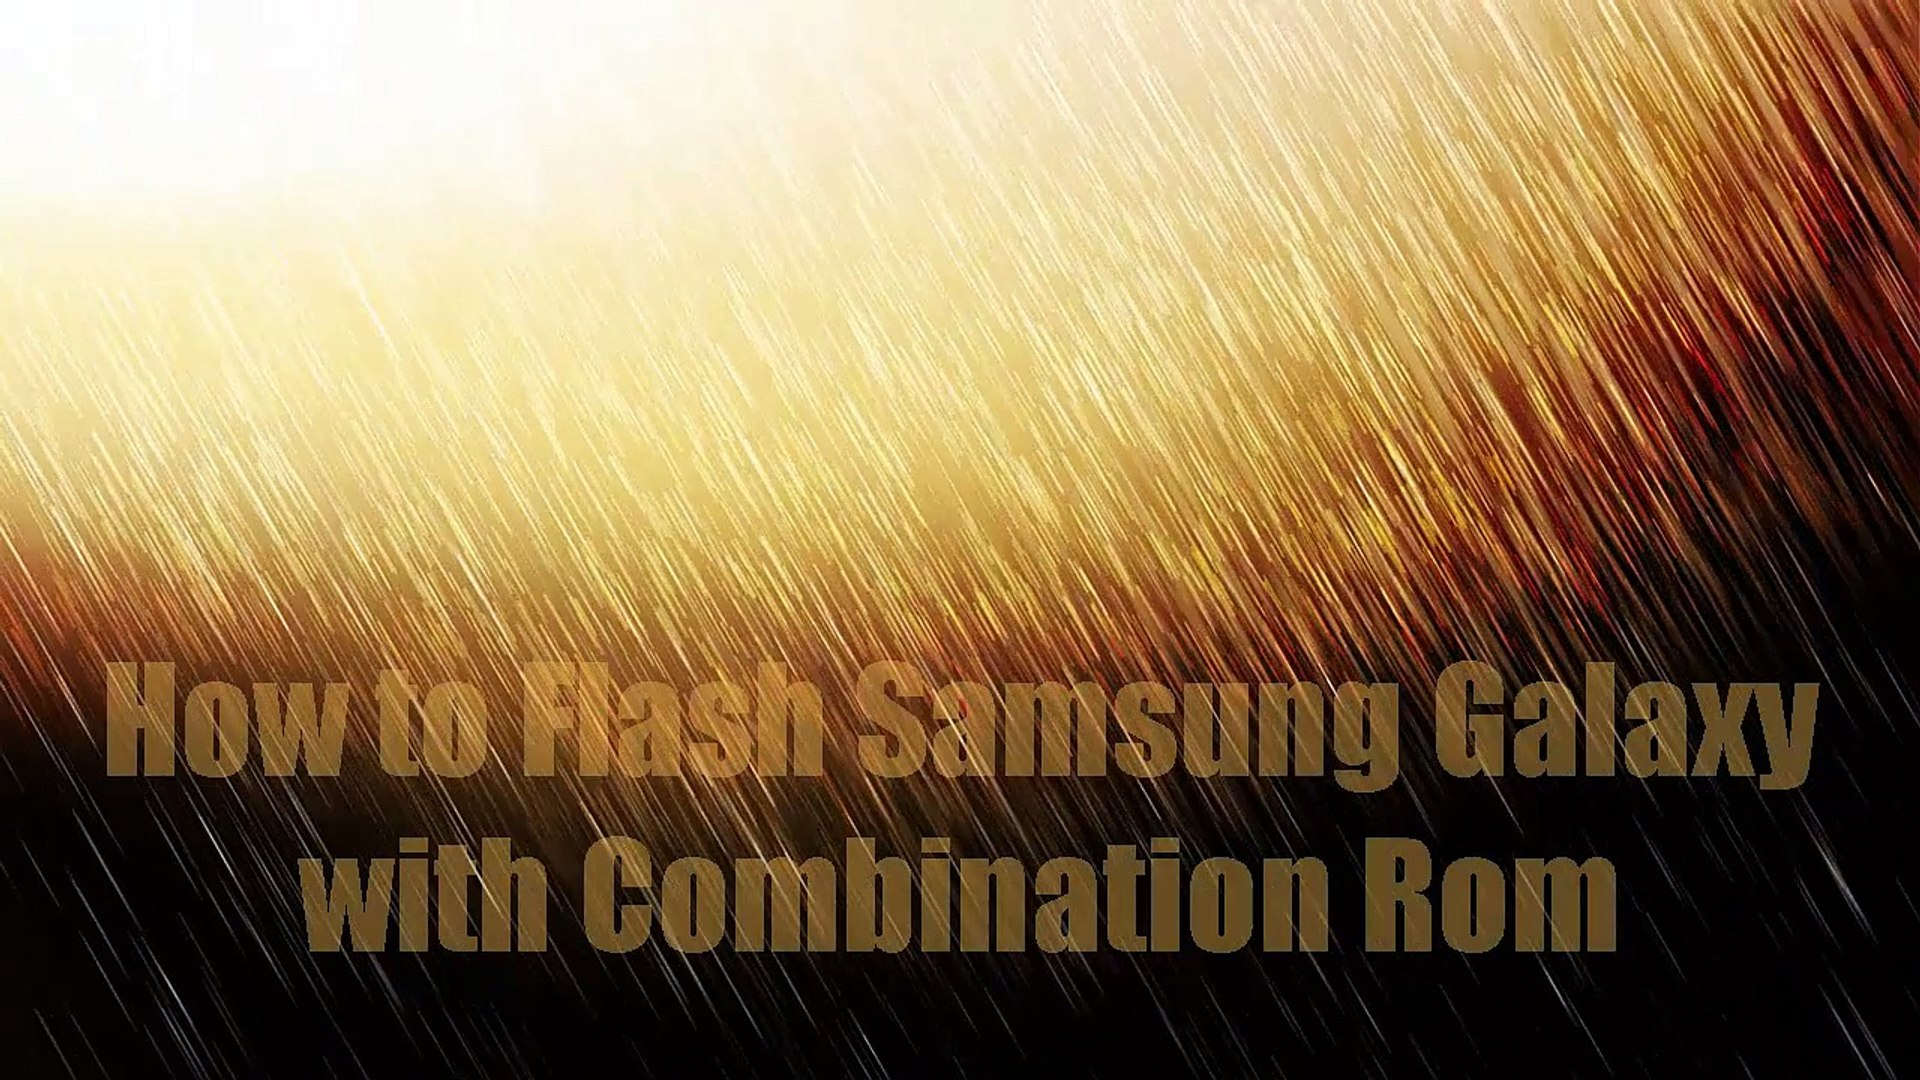 How to Flash Samsung Galaxy with Combination Rom